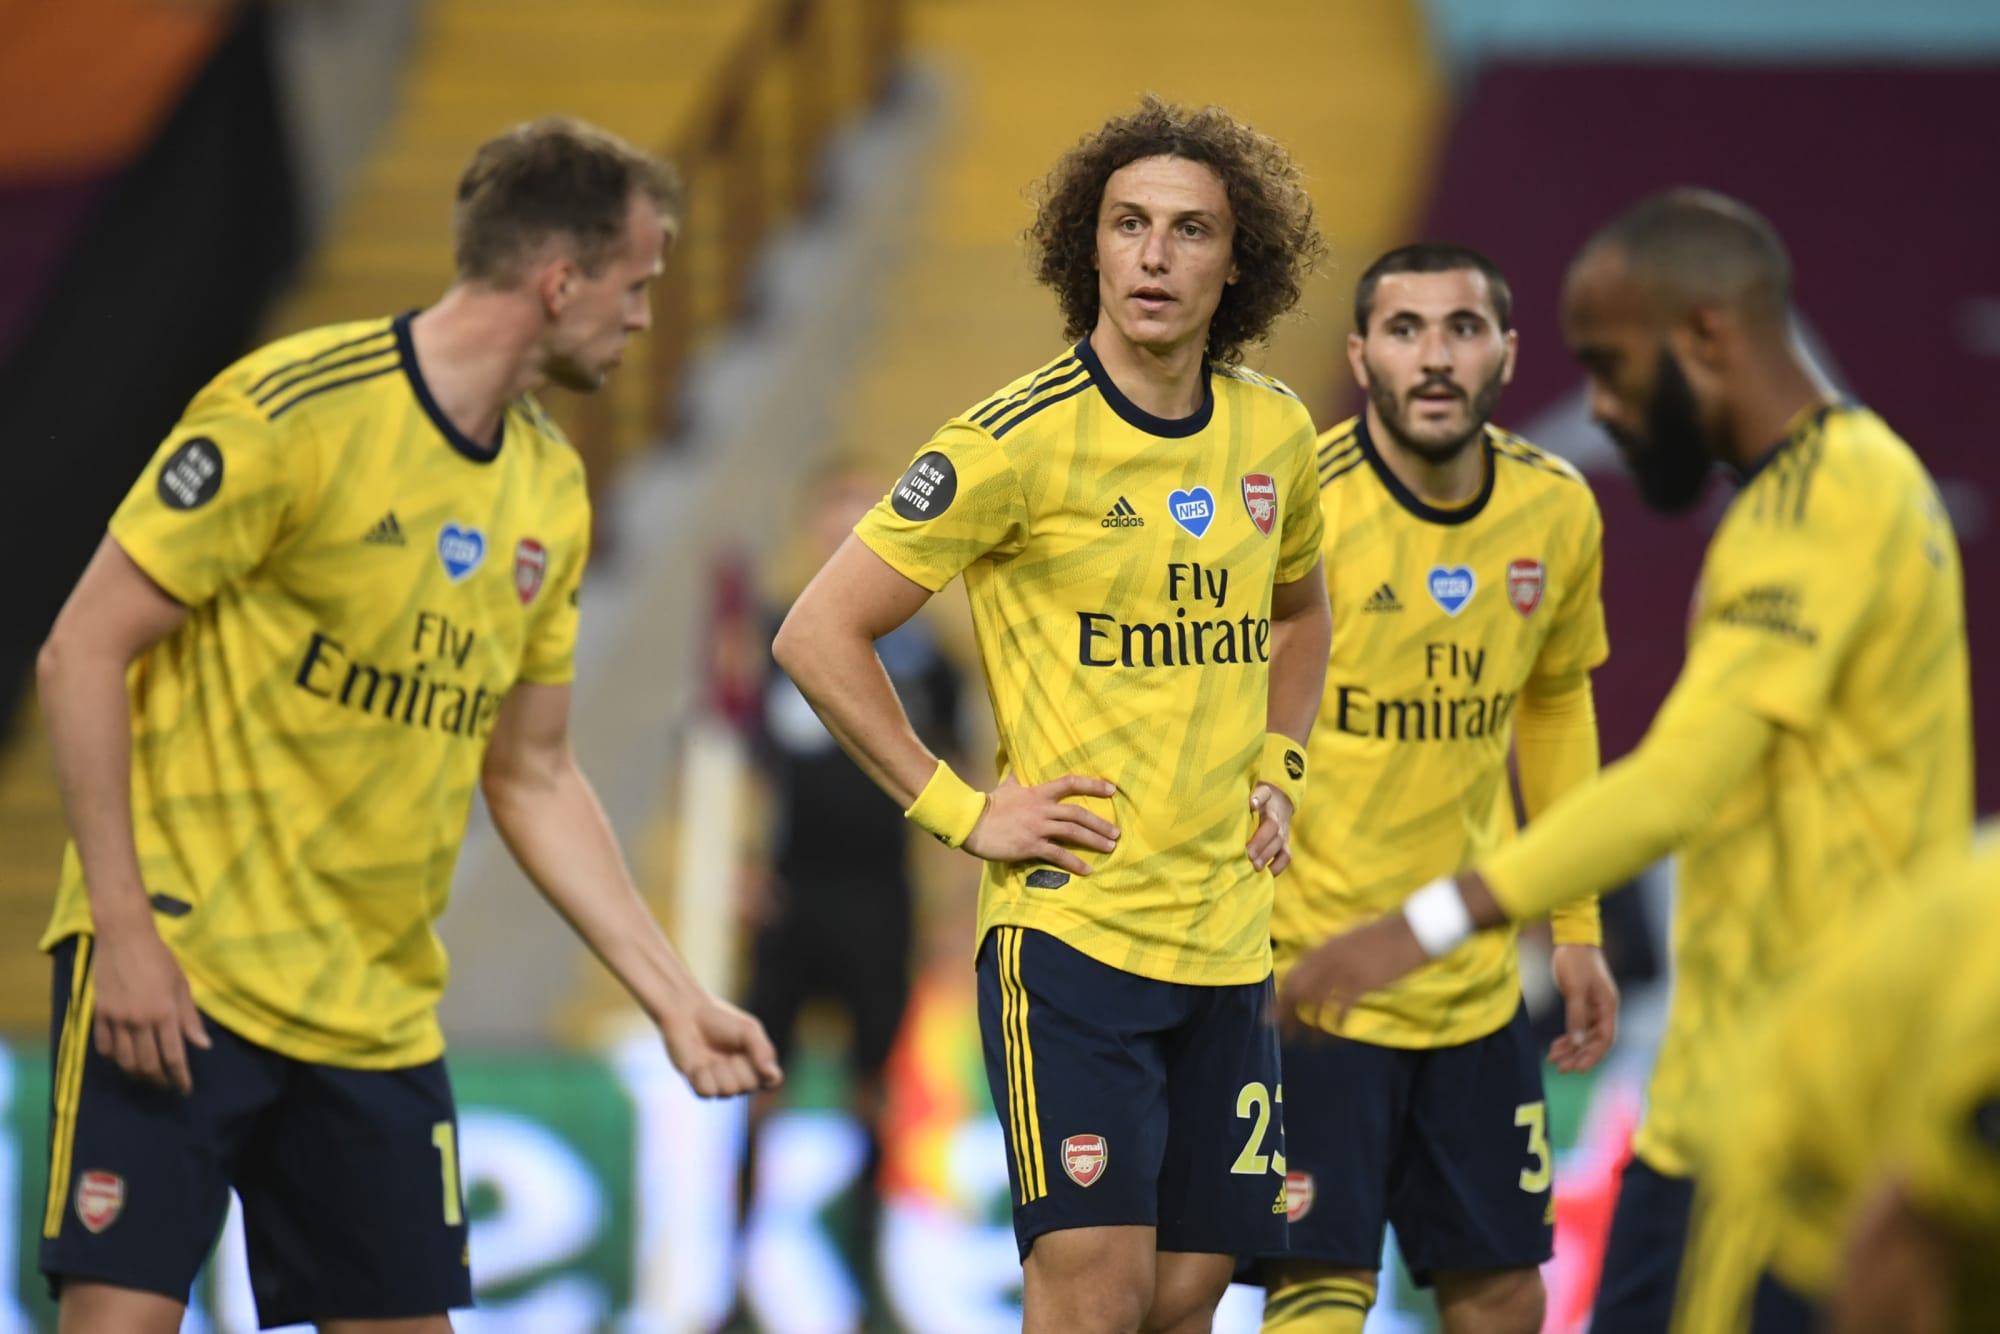 Arsenal's Centre-Backs: Keep or Sell?